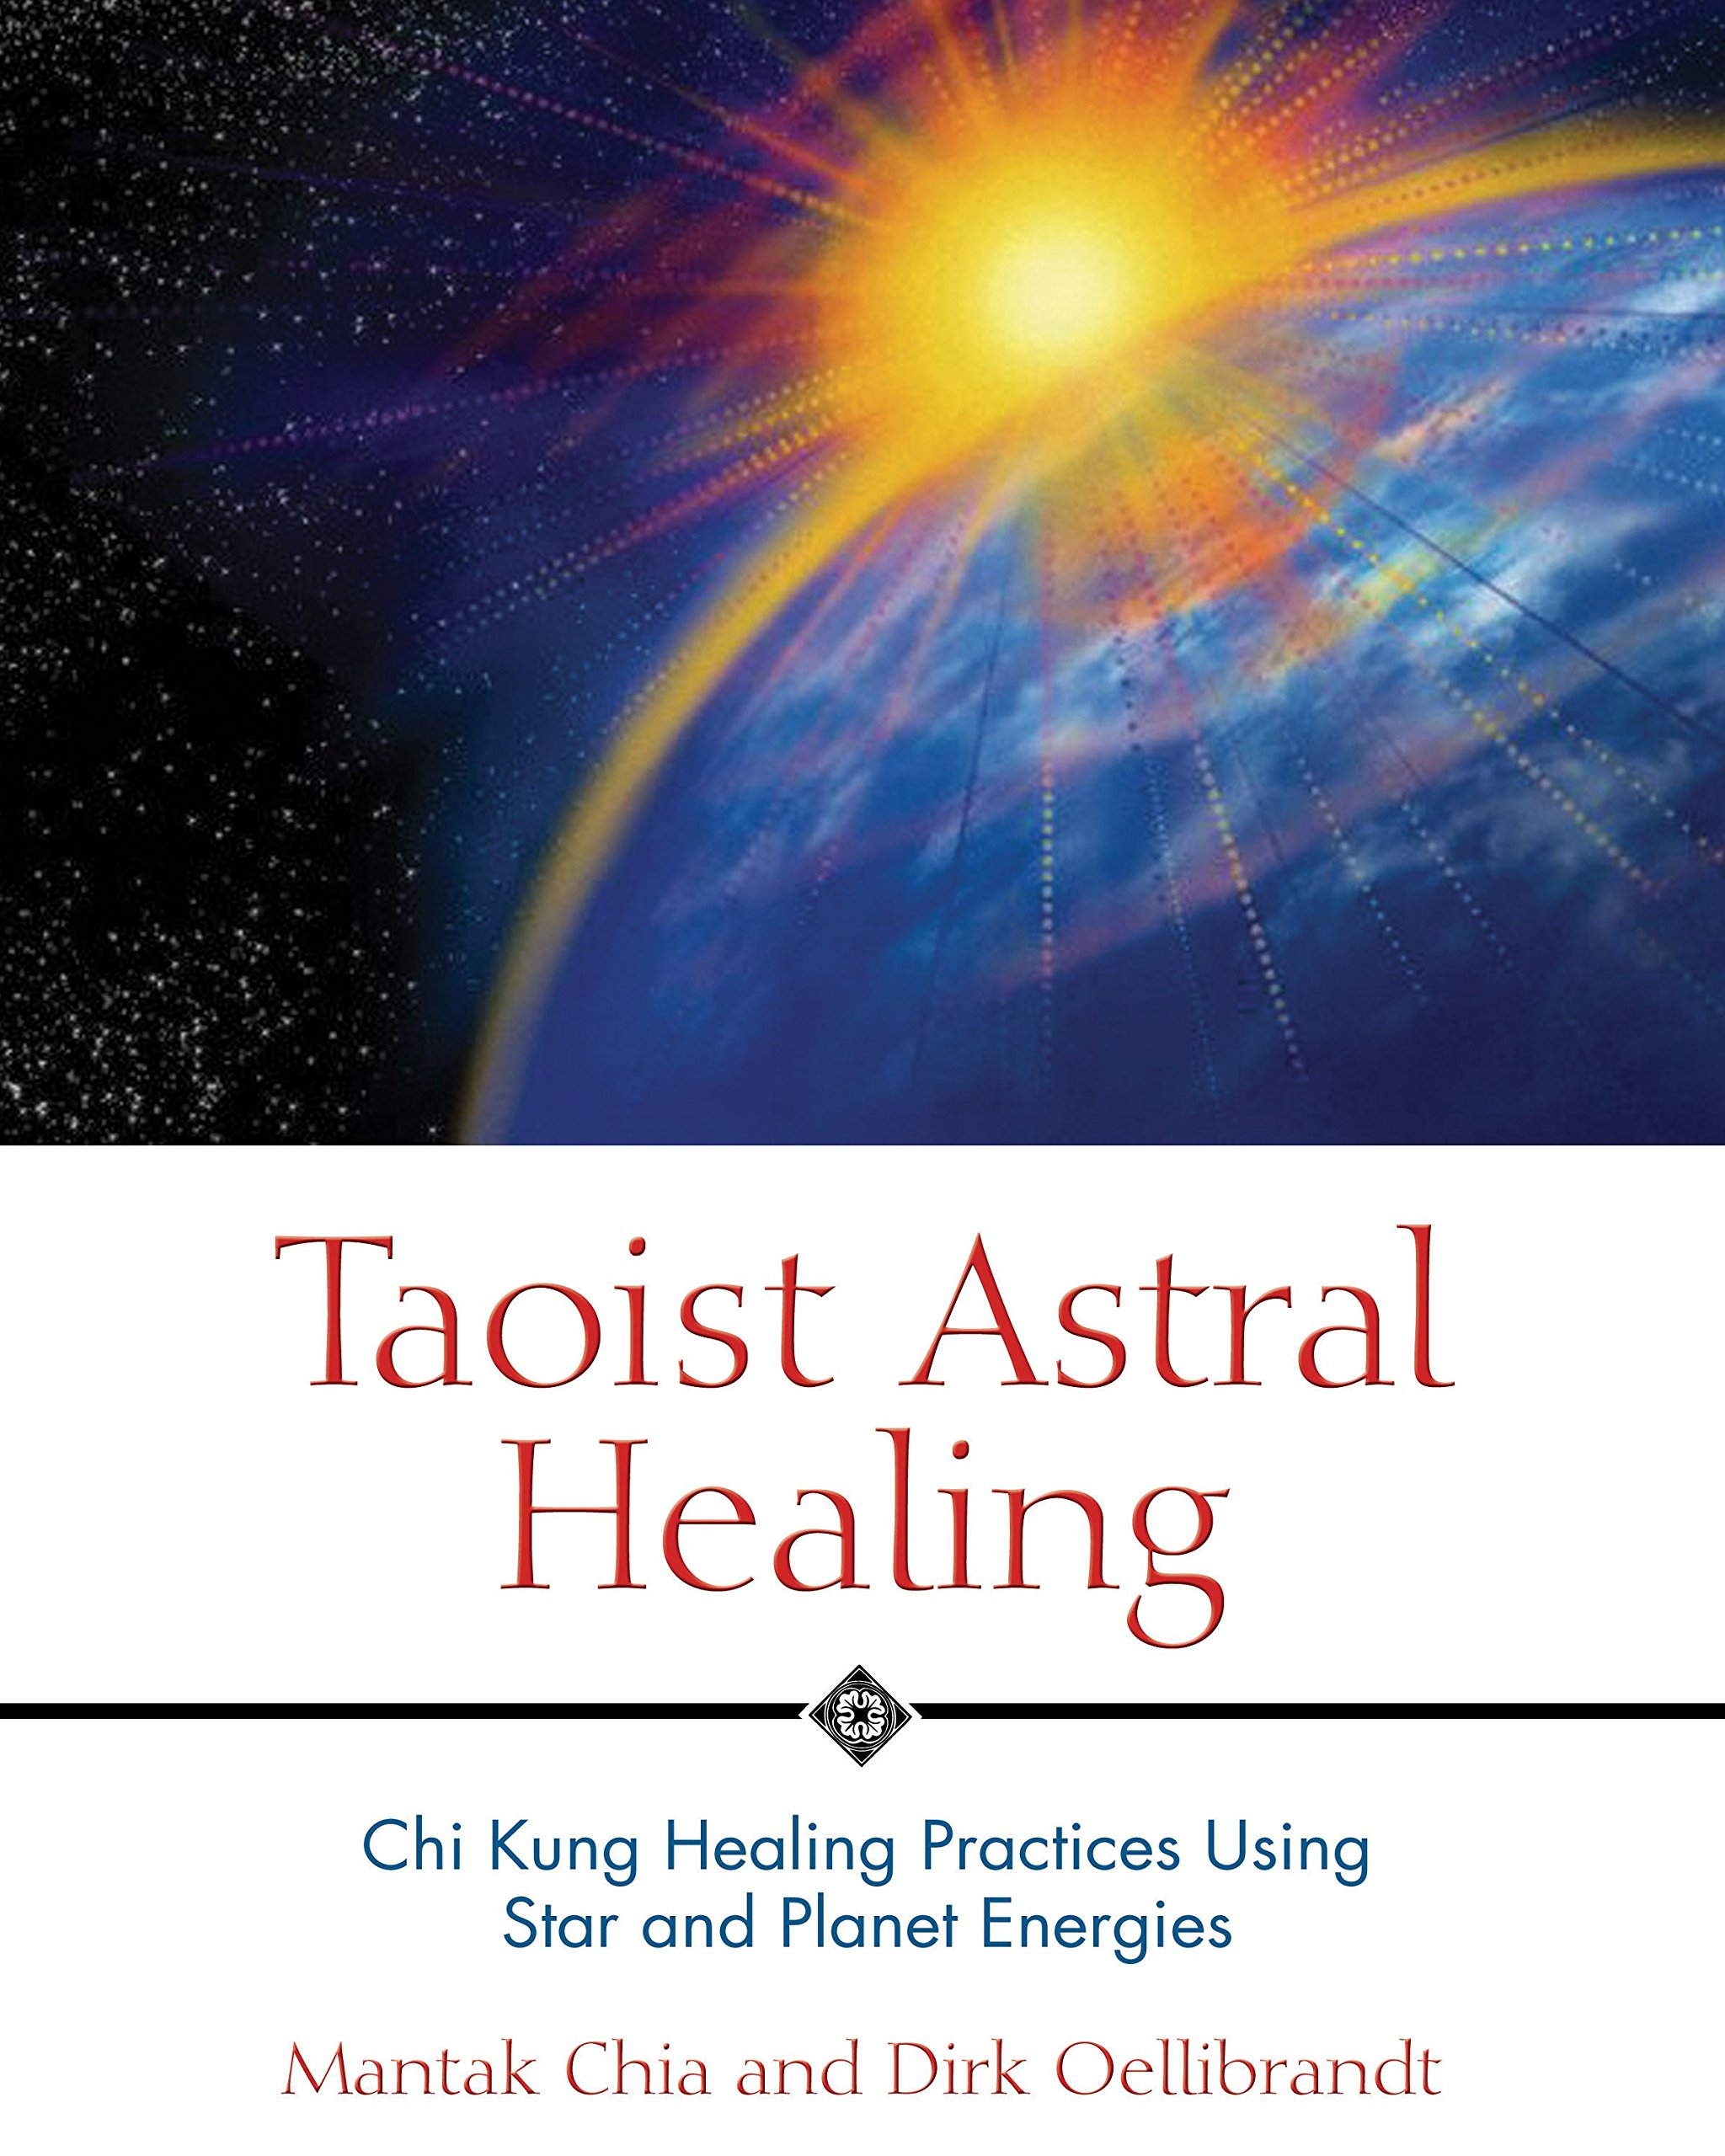 Taoist Astral Healing: Chi Kung Healing Practices Using Star and Planet  Energies: Mantak Chia, Dirk Oellibrandt: 9780892810895: Amazon.com: Books